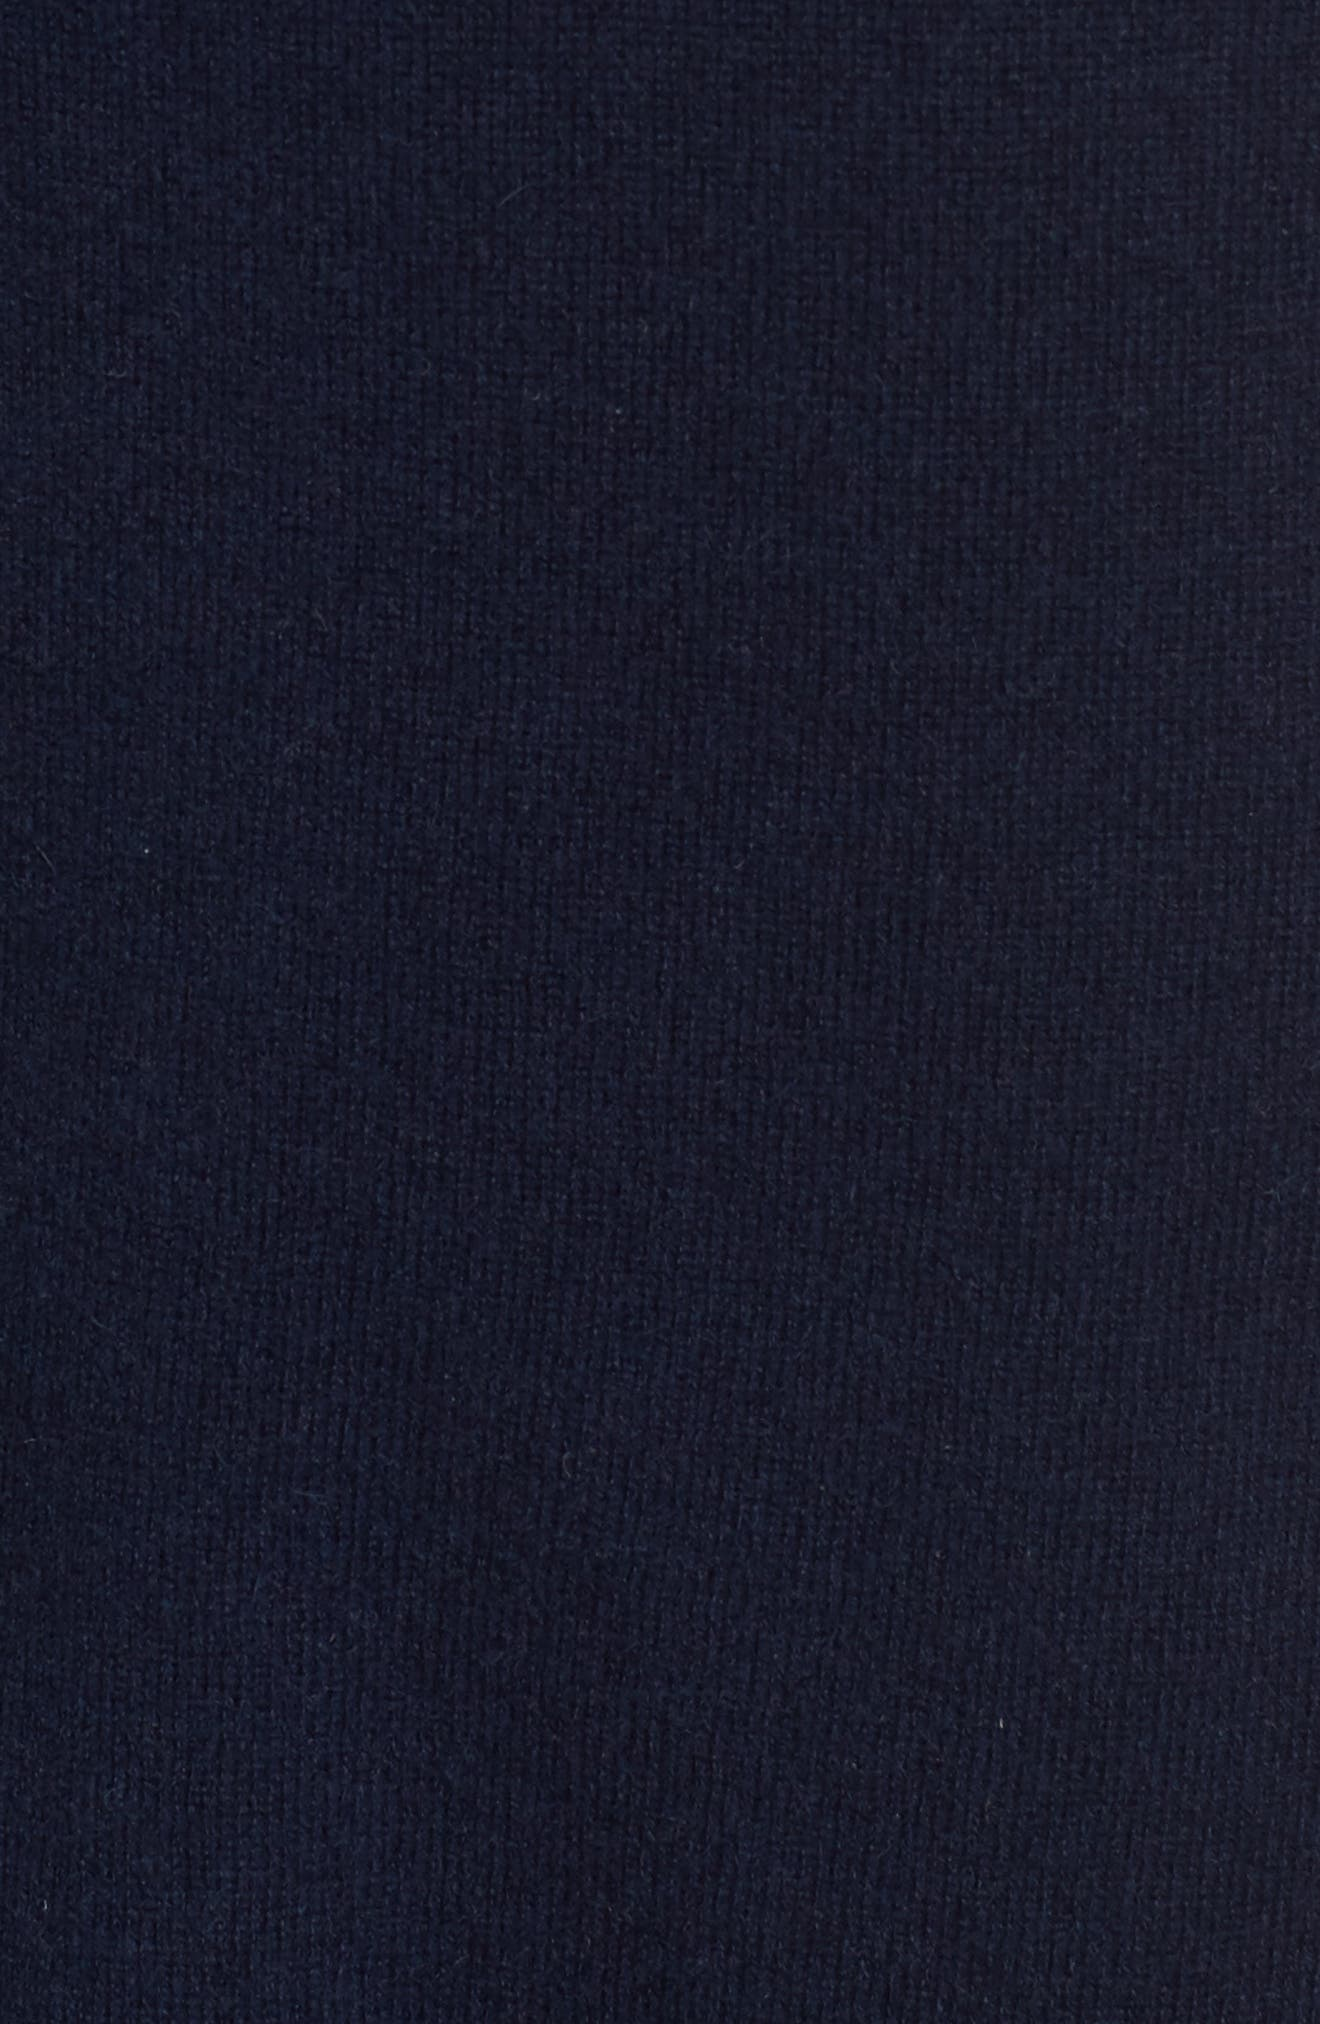 Turtleneck Cashmere Sweater,                             Alternate thumbnail 5, color,                             NAVY MEDIEVAL